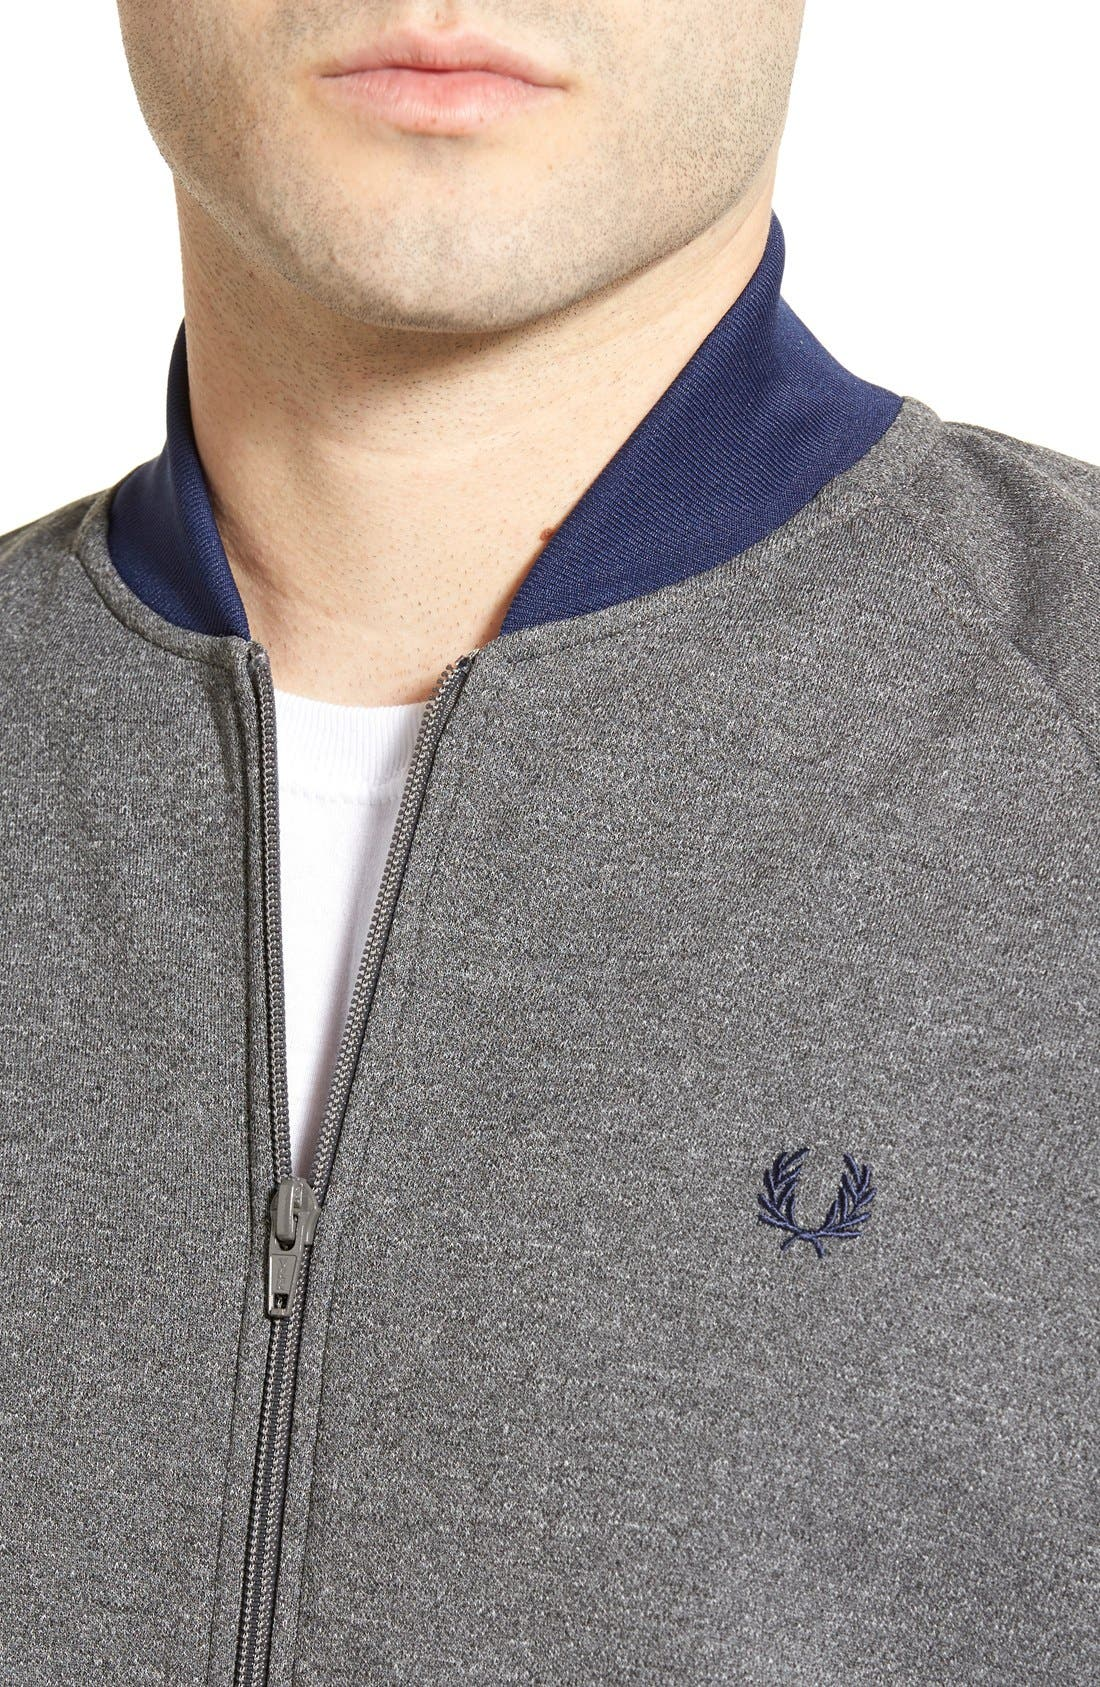 FRED PERRY,                             Bomber Track Jacket,                             Alternate thumbnail 2, color,                             024